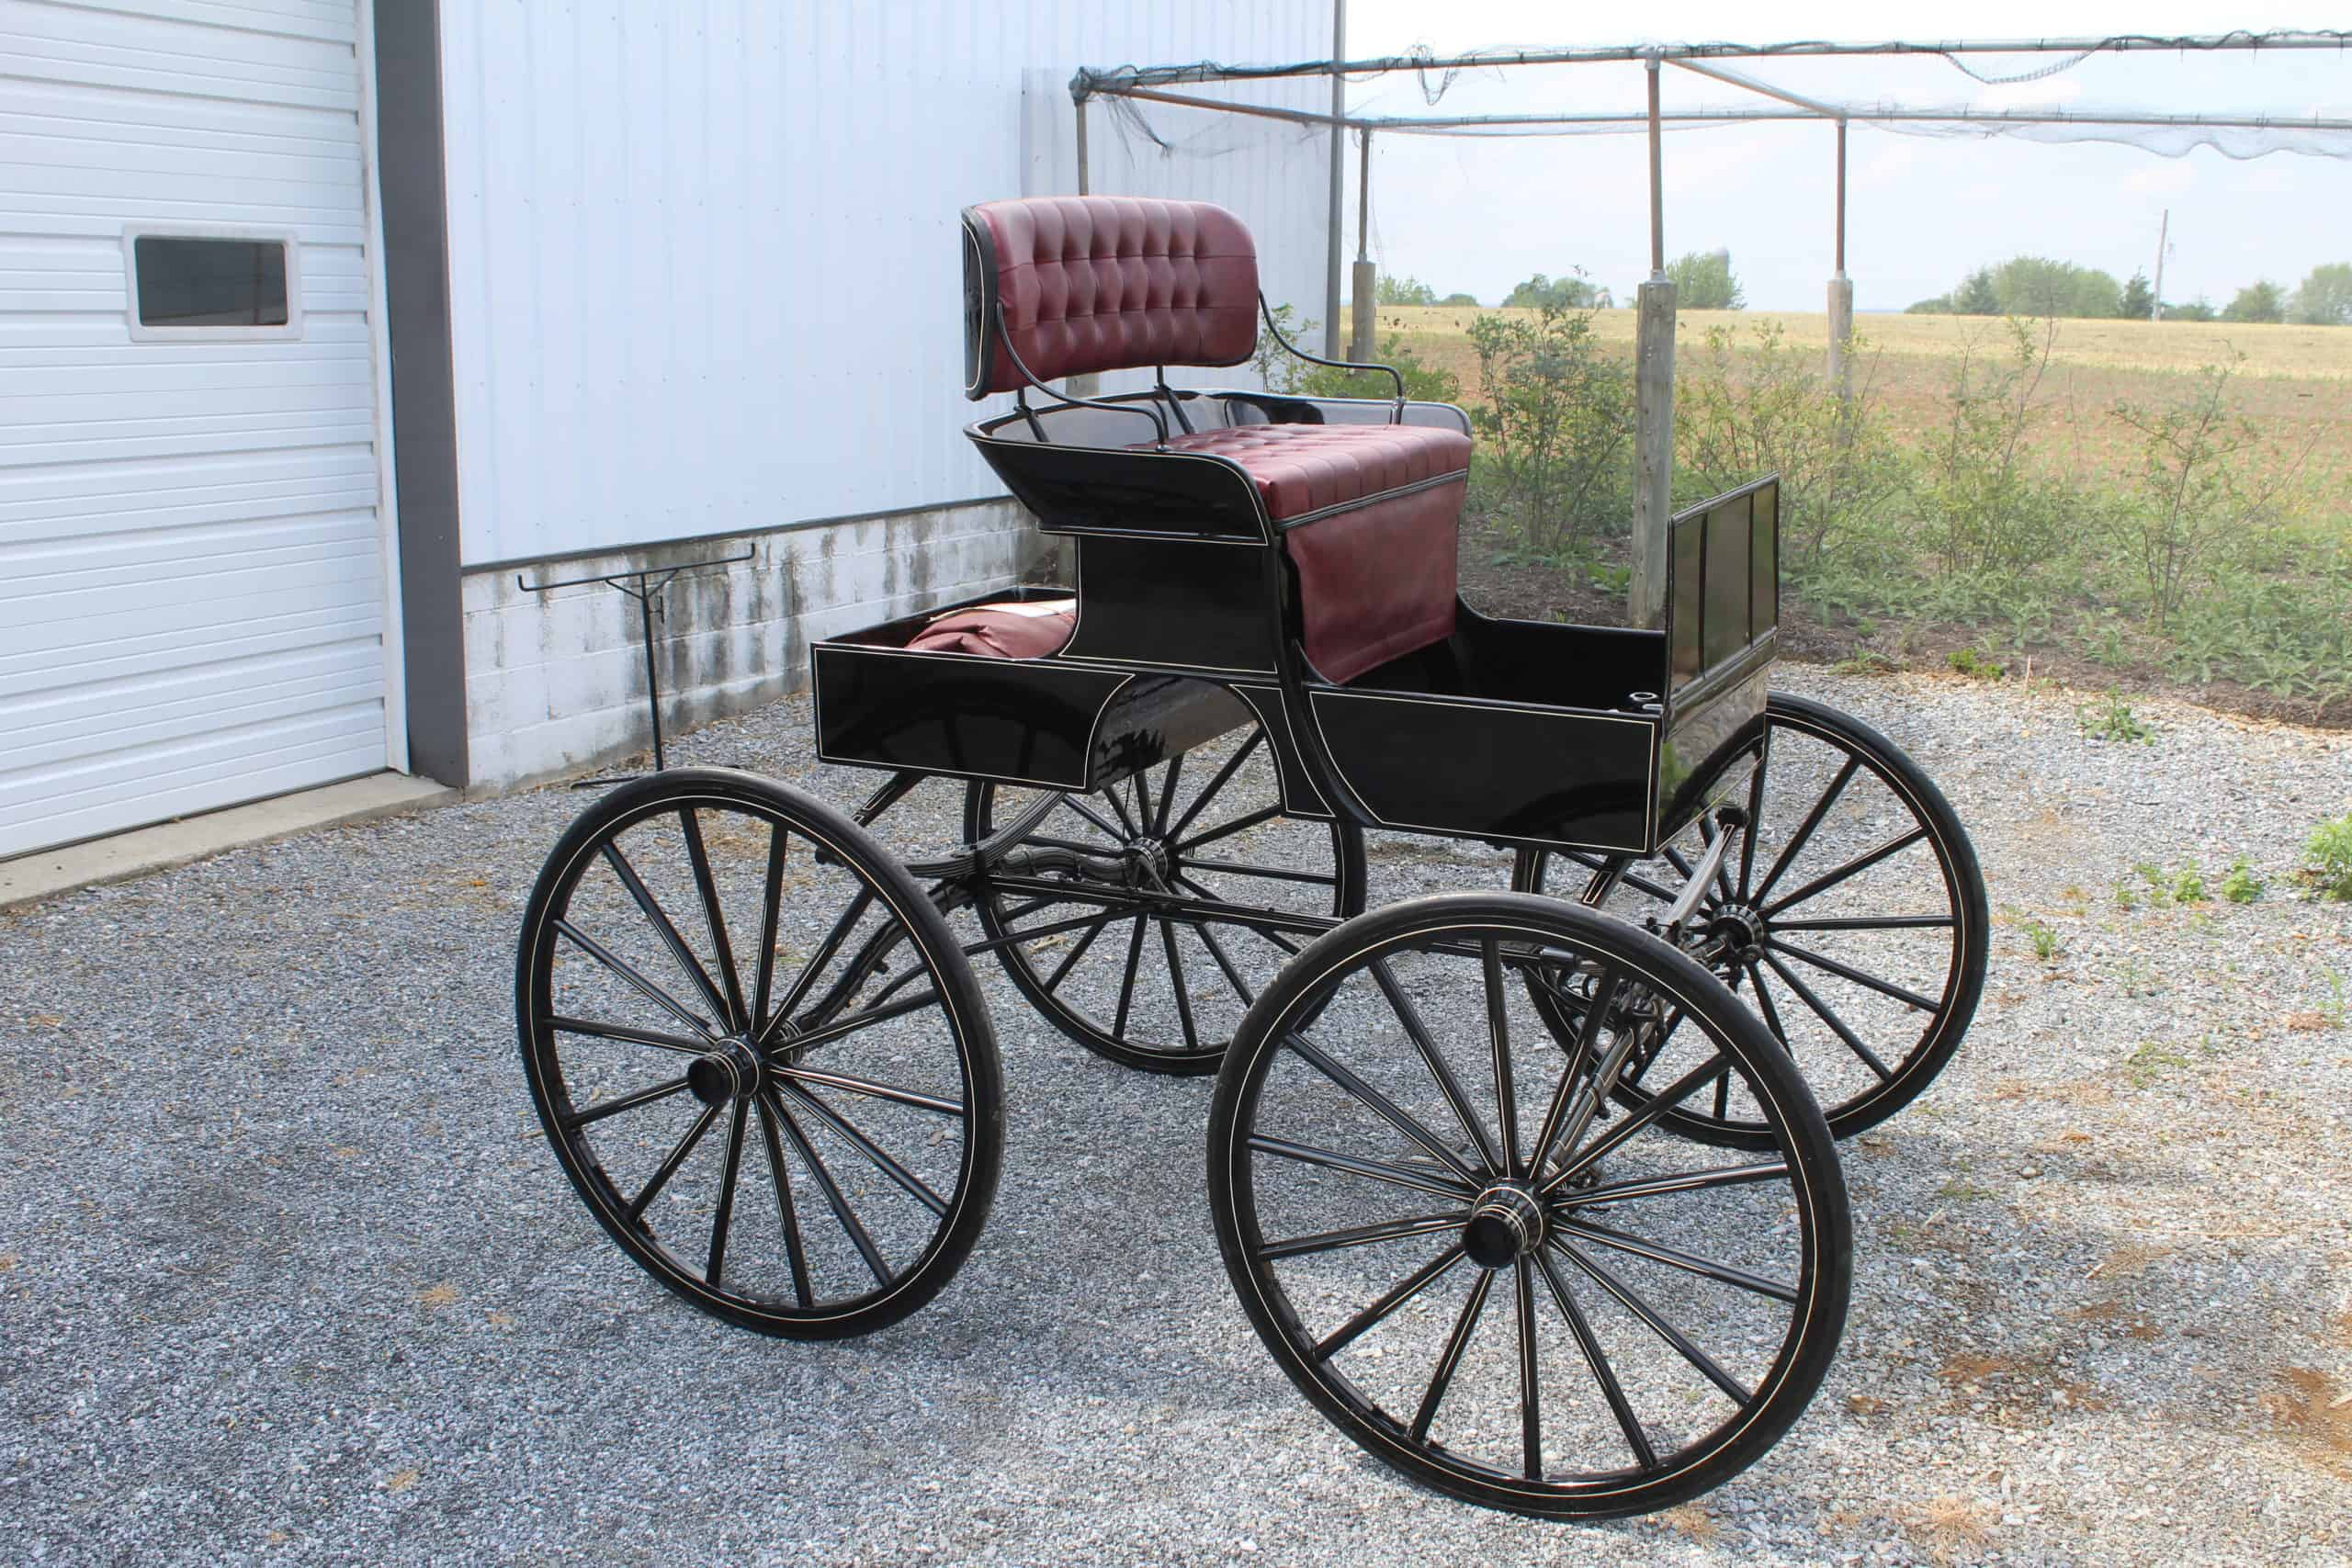 A&A Carriage, Wheel, and Harness Family Owned & Operated, Carriages, Wheels, Harness &Tack, New Holland, PA, Easy Enter Road Cart, Pioneer Buckboard Wagon, Pony Wagons, Hay Ride Wagon